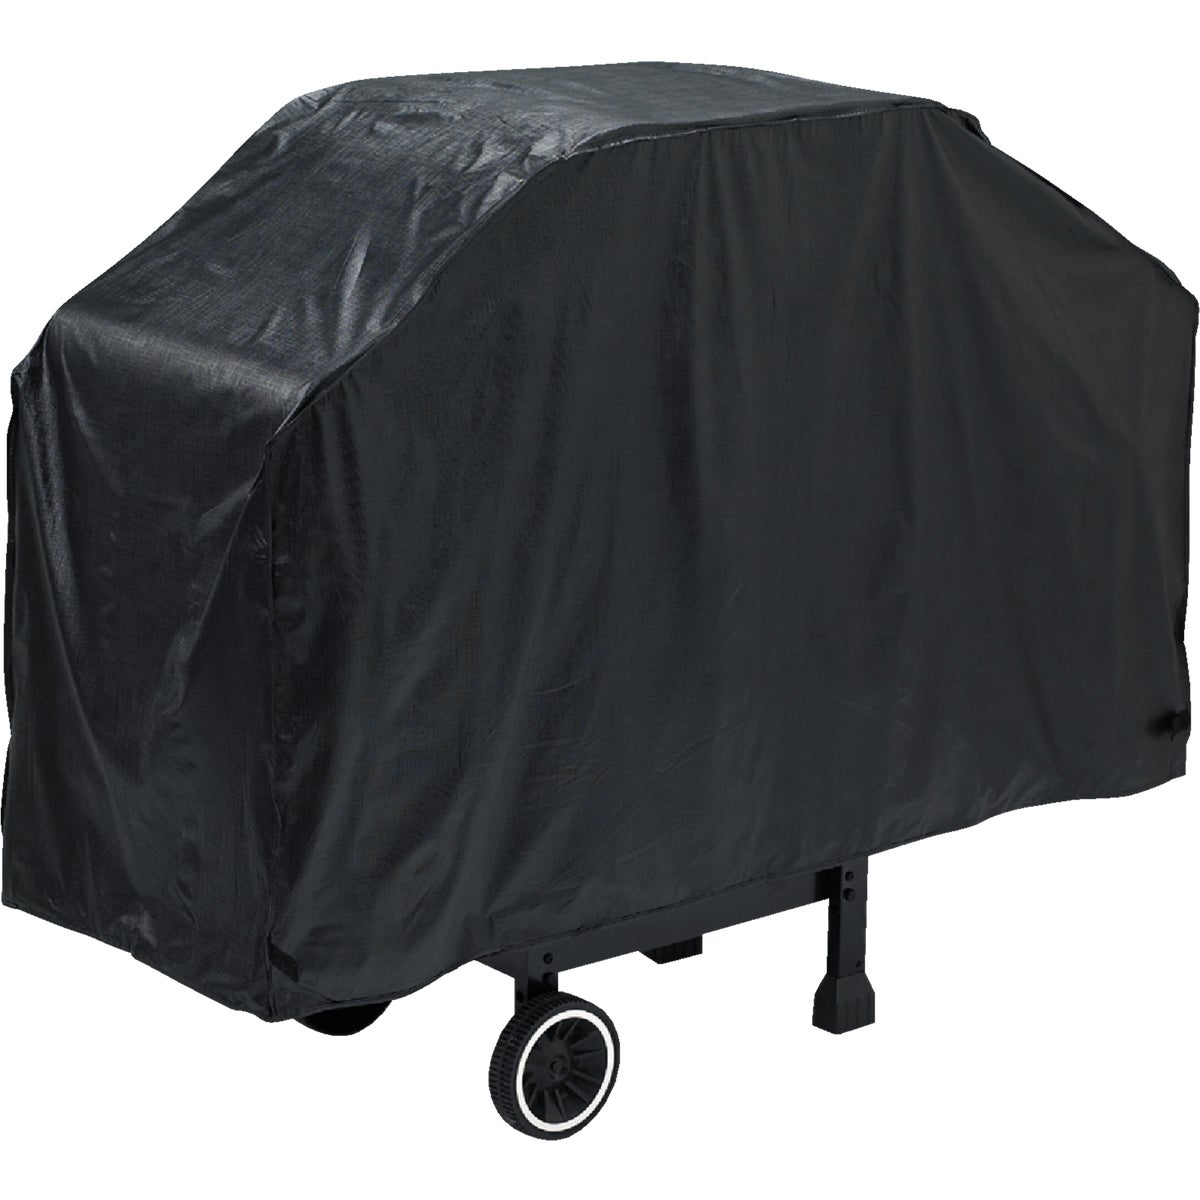 "56"" ECONOMY GRILL COVER - 84156 by Onward Multi Corp Hk"